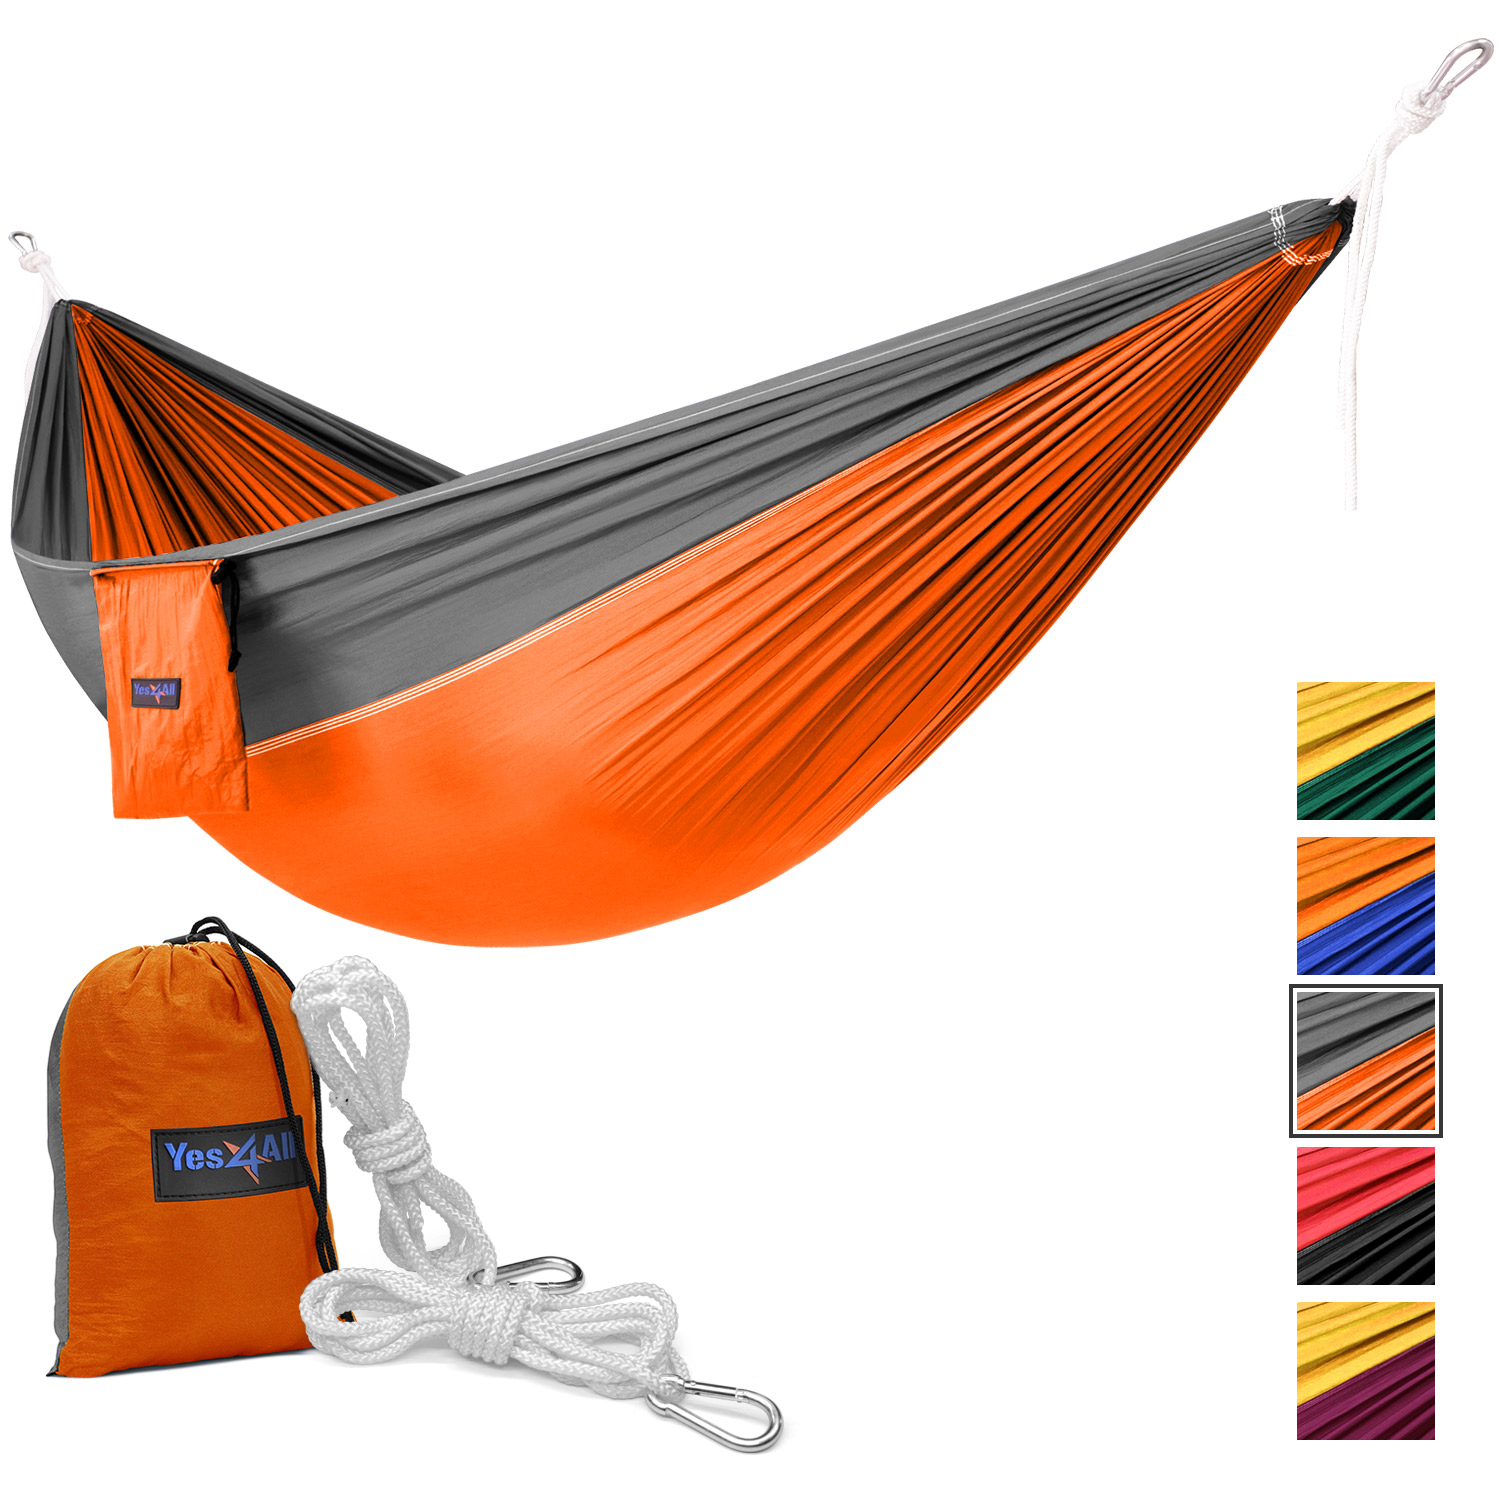 Yes4All Lightweight Double Camping Hammock with Carry Bag